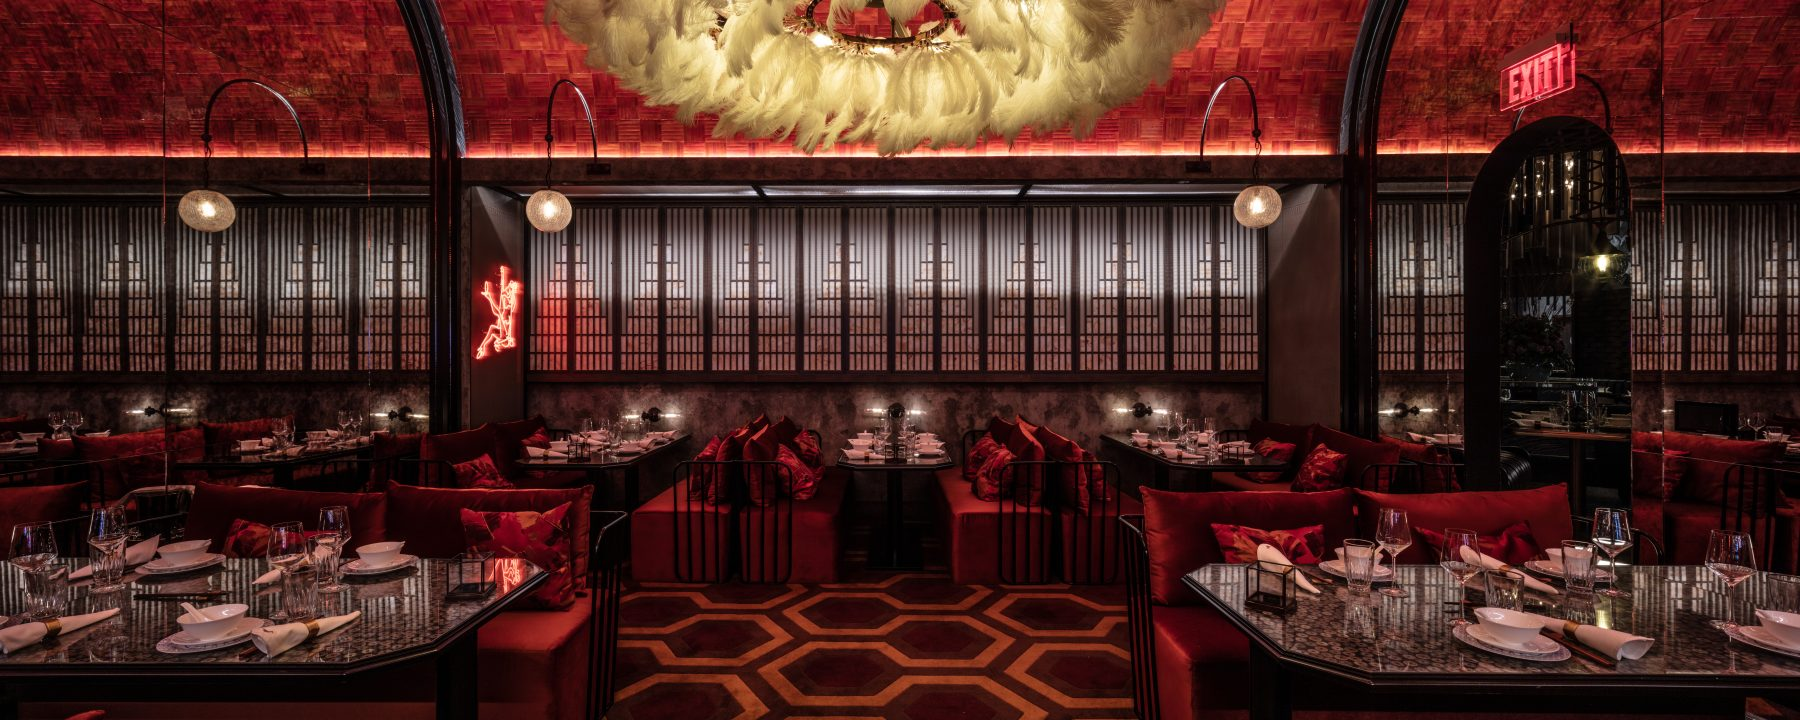 Joyce Wang Studio The Most Incredible Luxury Restaurant Designs_4